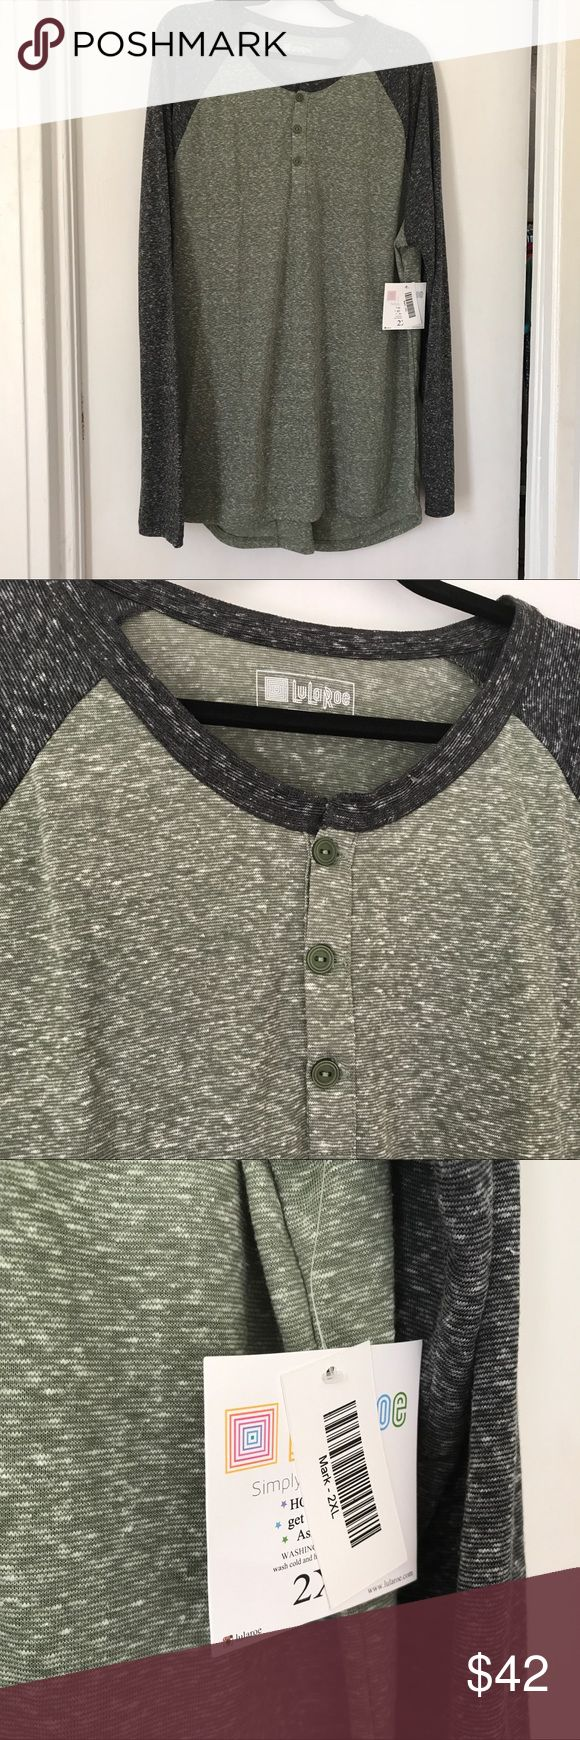 BNWT LuLaRoe 2X Mens Mark Long Sleeve Henley Tee BNWT LuLaRoe 2X Mens Mark Long Sleeve Henley Tee heathered green body w/ charcoal gray sleeves and collar. Super soft with three buttons at top. Perfect for a casual office or weekend wear. Fits TTS. LuLaRoe Shirts Tees - Long Sleeve